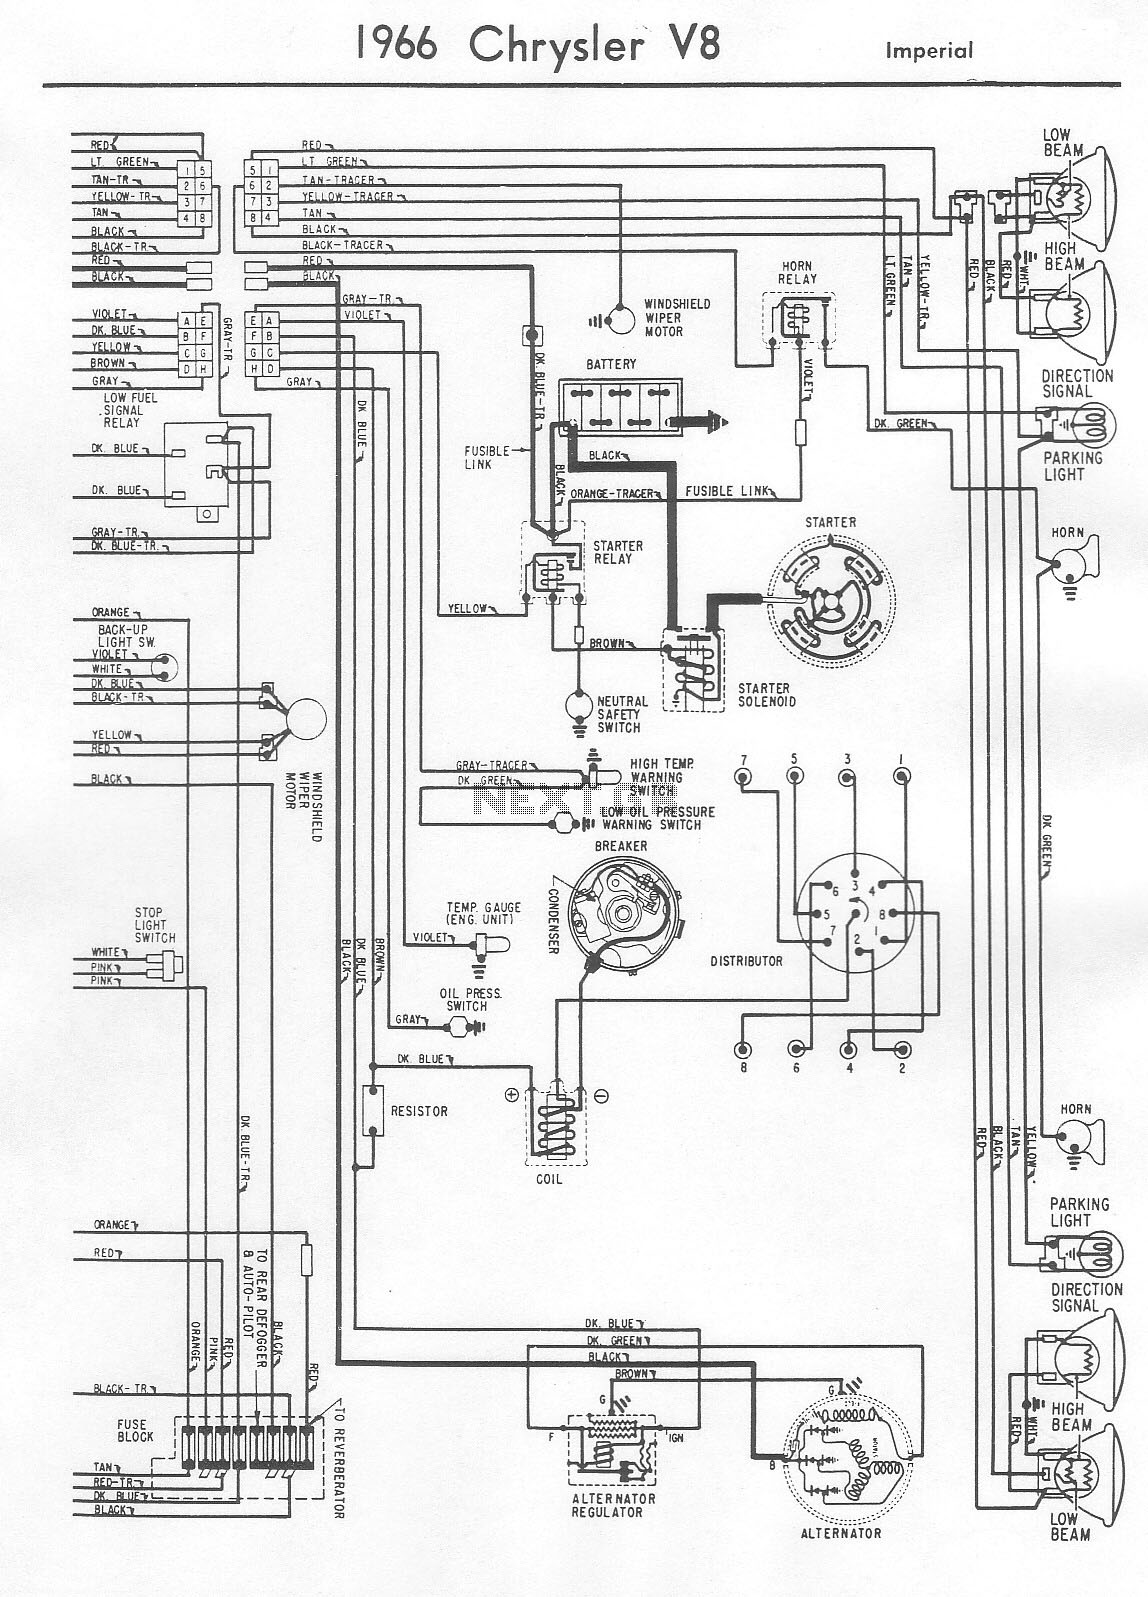 [SCHEMATICS_43NM]  43F5 Chrysler Lean Burn Wiring Diagram | Wiring Resources | 1966 Chrysler 440 Wiring Diagram |  | Wiring Resources